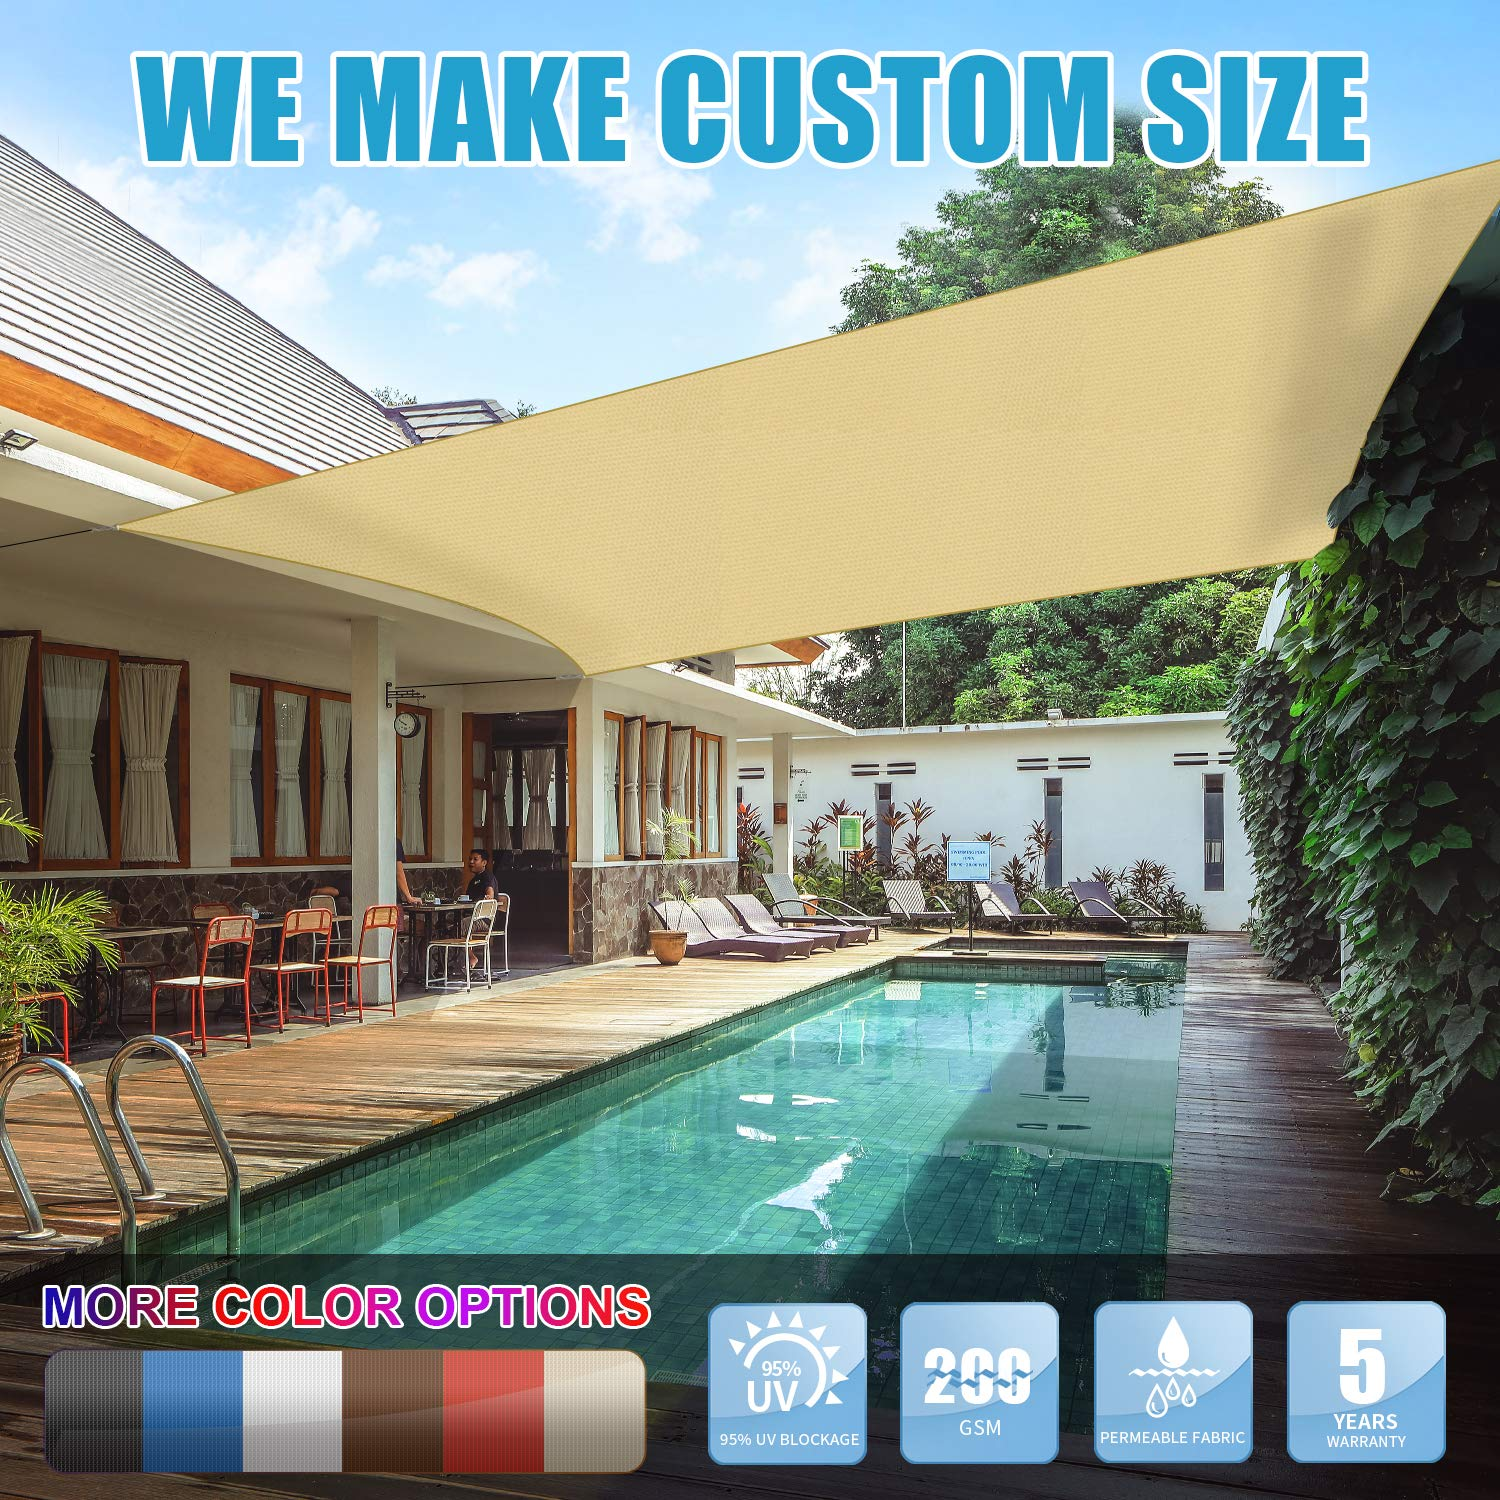 Amgo 8' x 12' Beige Rectangle Sun Shade Sail Canopy Awning, 95% UV Blockage, Water & Air Permeable, Commercial and Residential, for Patio Yard Pergola, 5 Years Warranty (Available for Custom Sizes) by Amgo